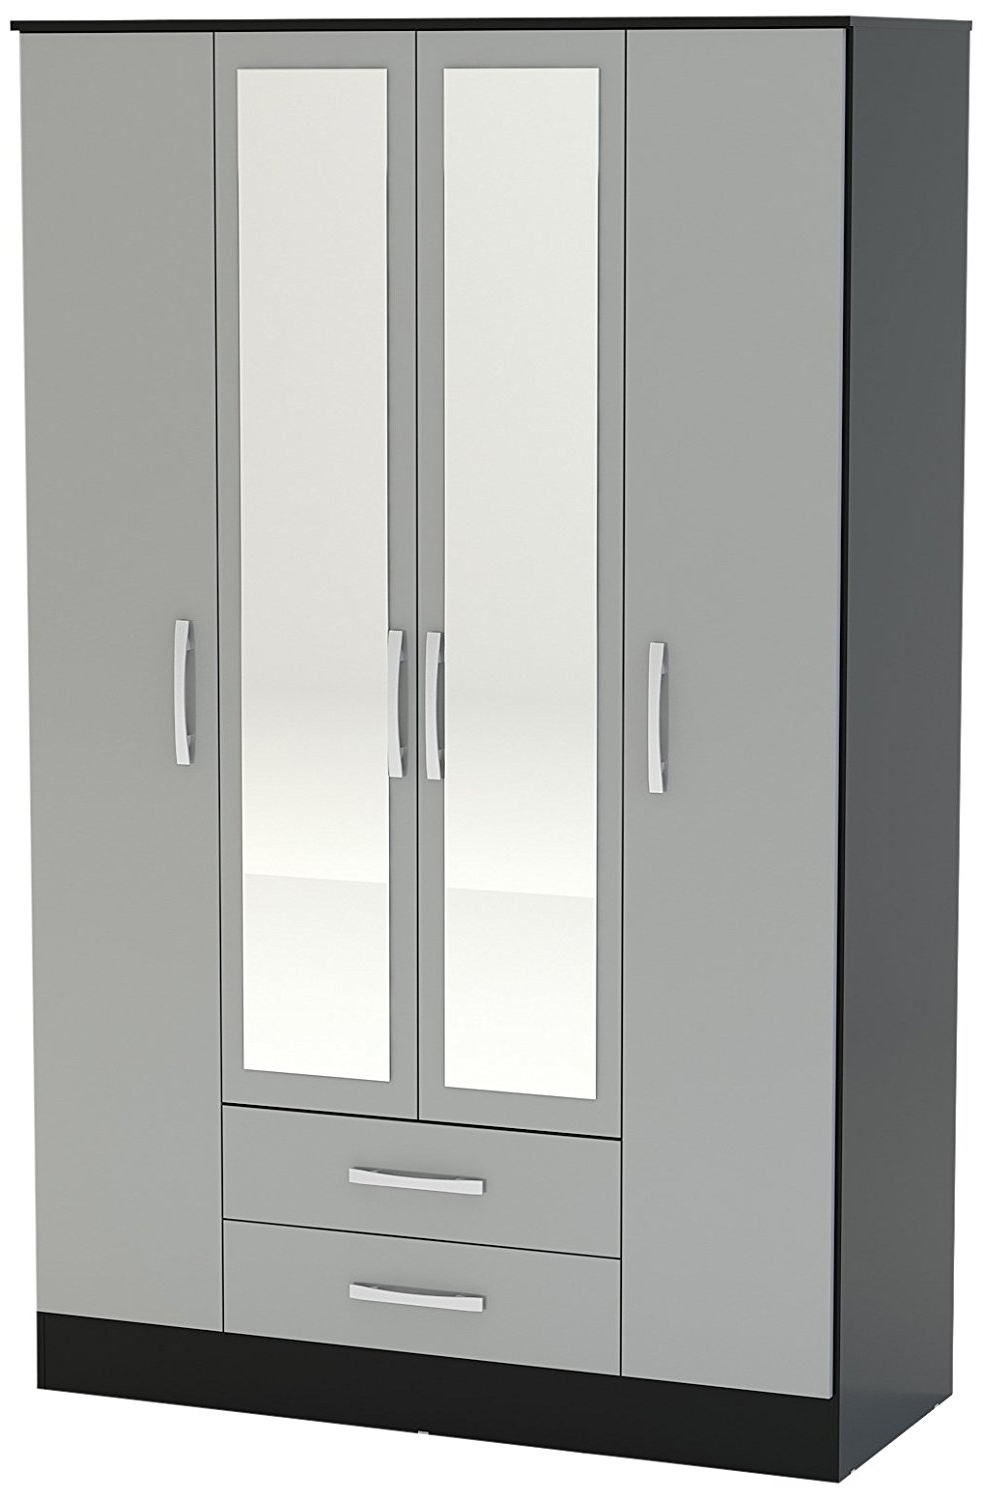 White Gloss Wardrobes Throughout 2018 Birlea Lynx 4 Door 2 Drawer Wardrobe With Mirror – High Gloss (View 14 of 15)